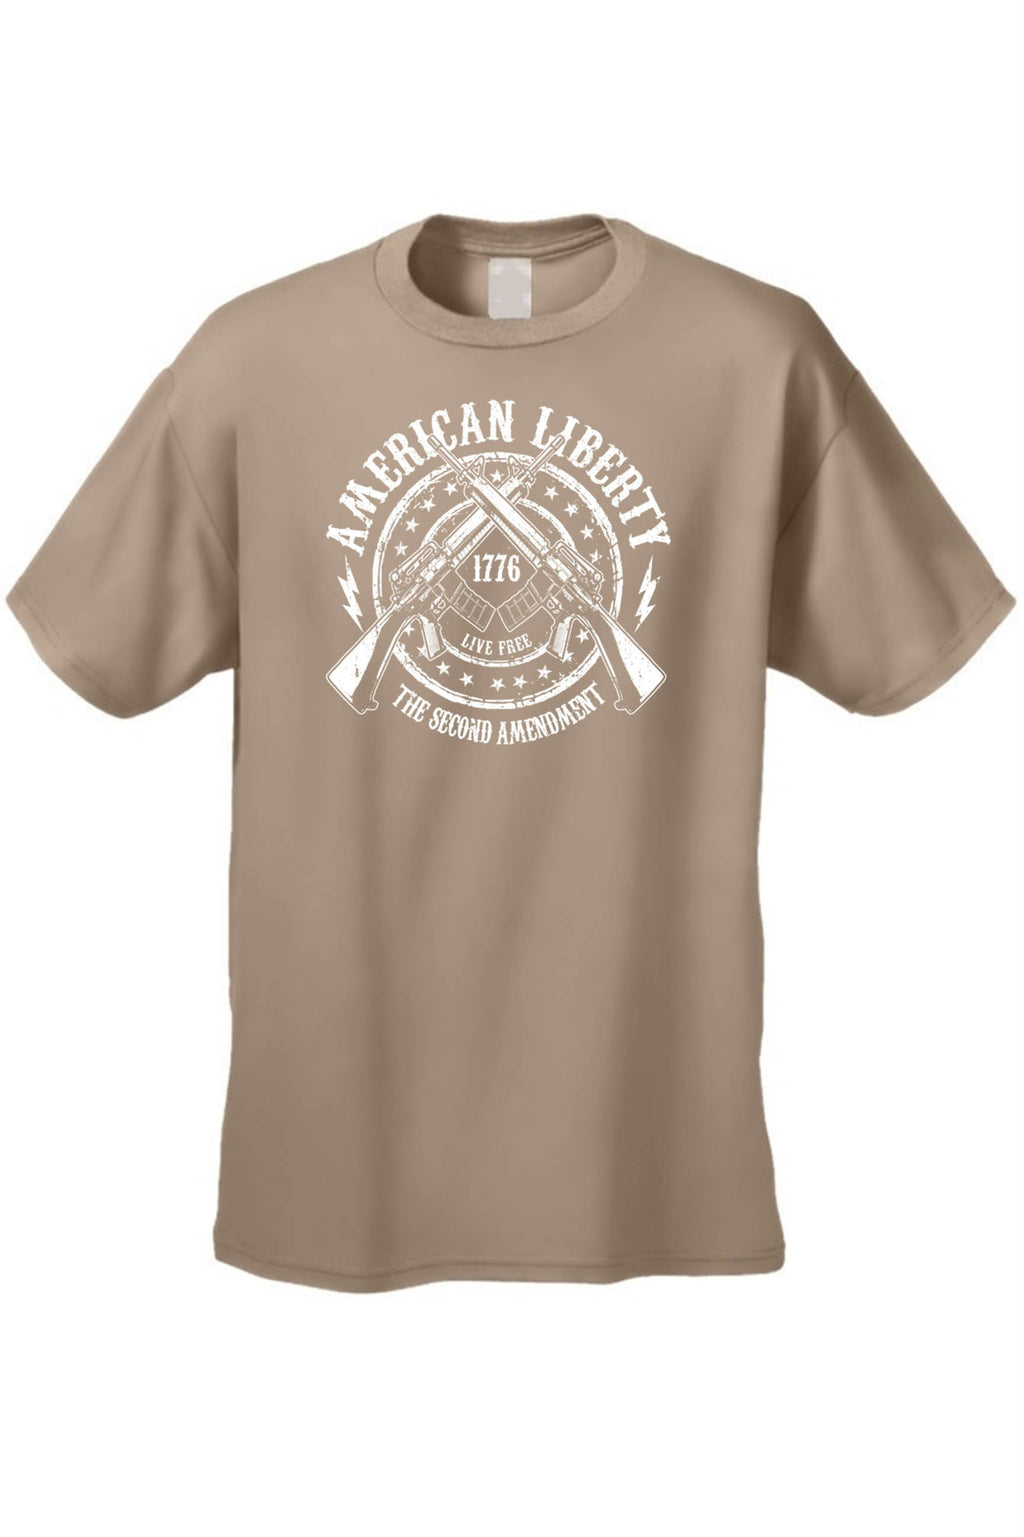 Men's T Shirt American Liberty The 2nd Amendment Tee